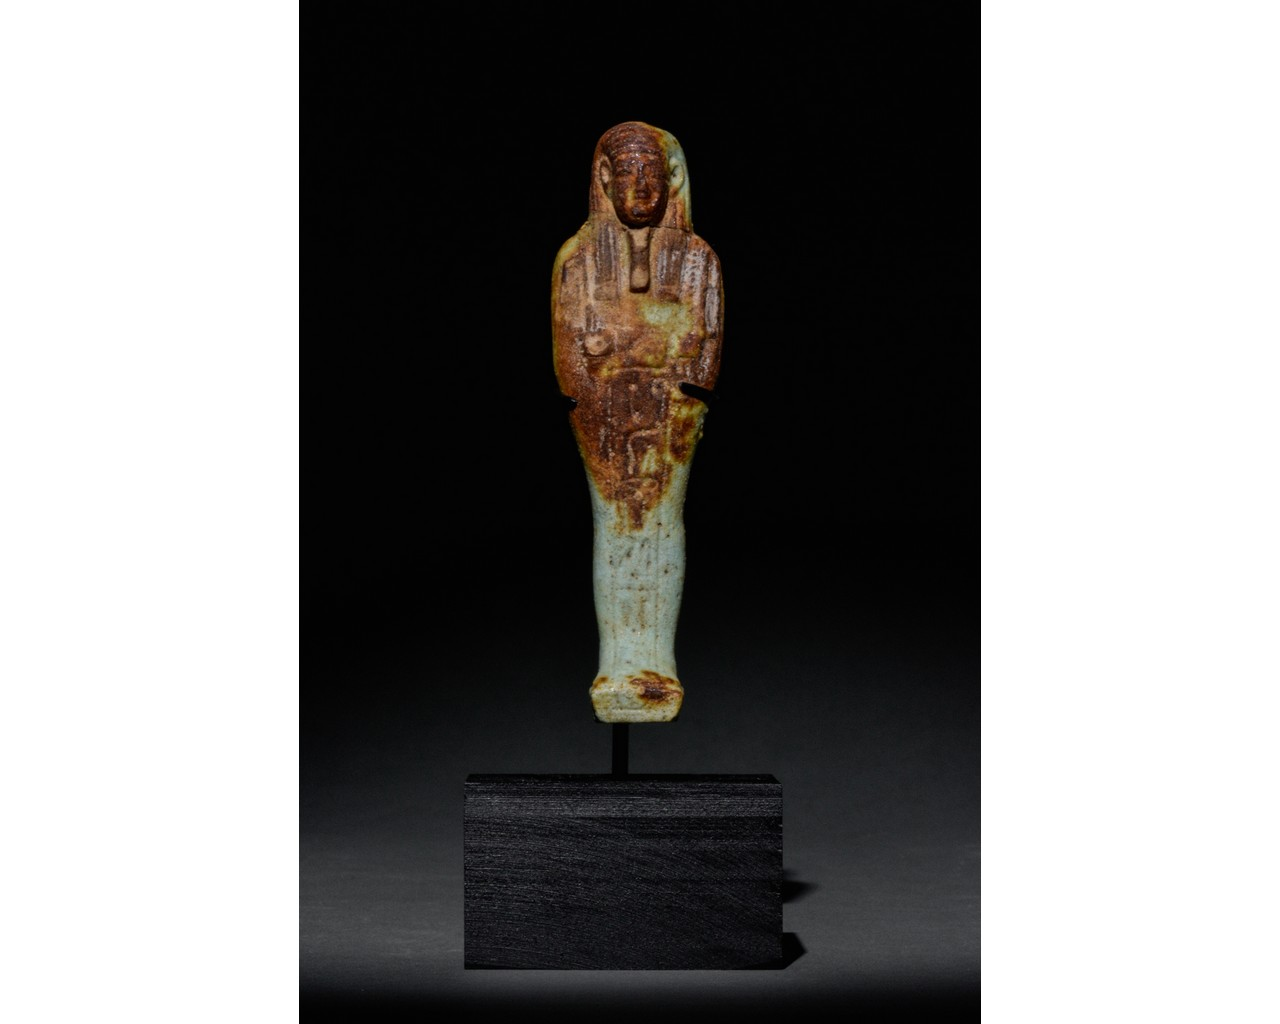 EGYPTIAN FAIENCE SHABTI WITH REDDISH-BROWN AREAS - TRANSLATED